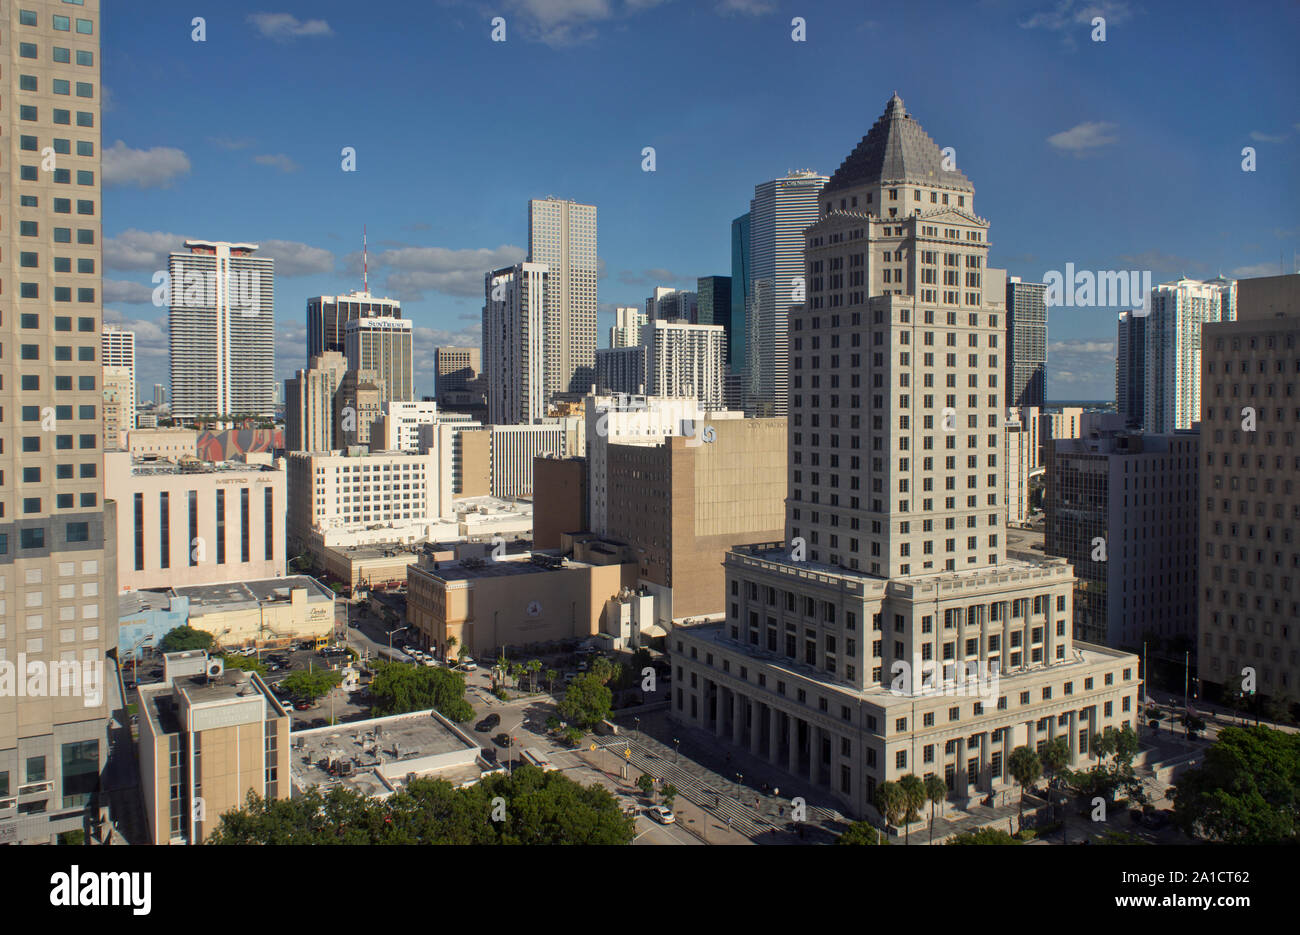 View of historic Miami-Dade County Courthouse tower from Government Center building  in downtown Miami, Florida, USA Stock Photo